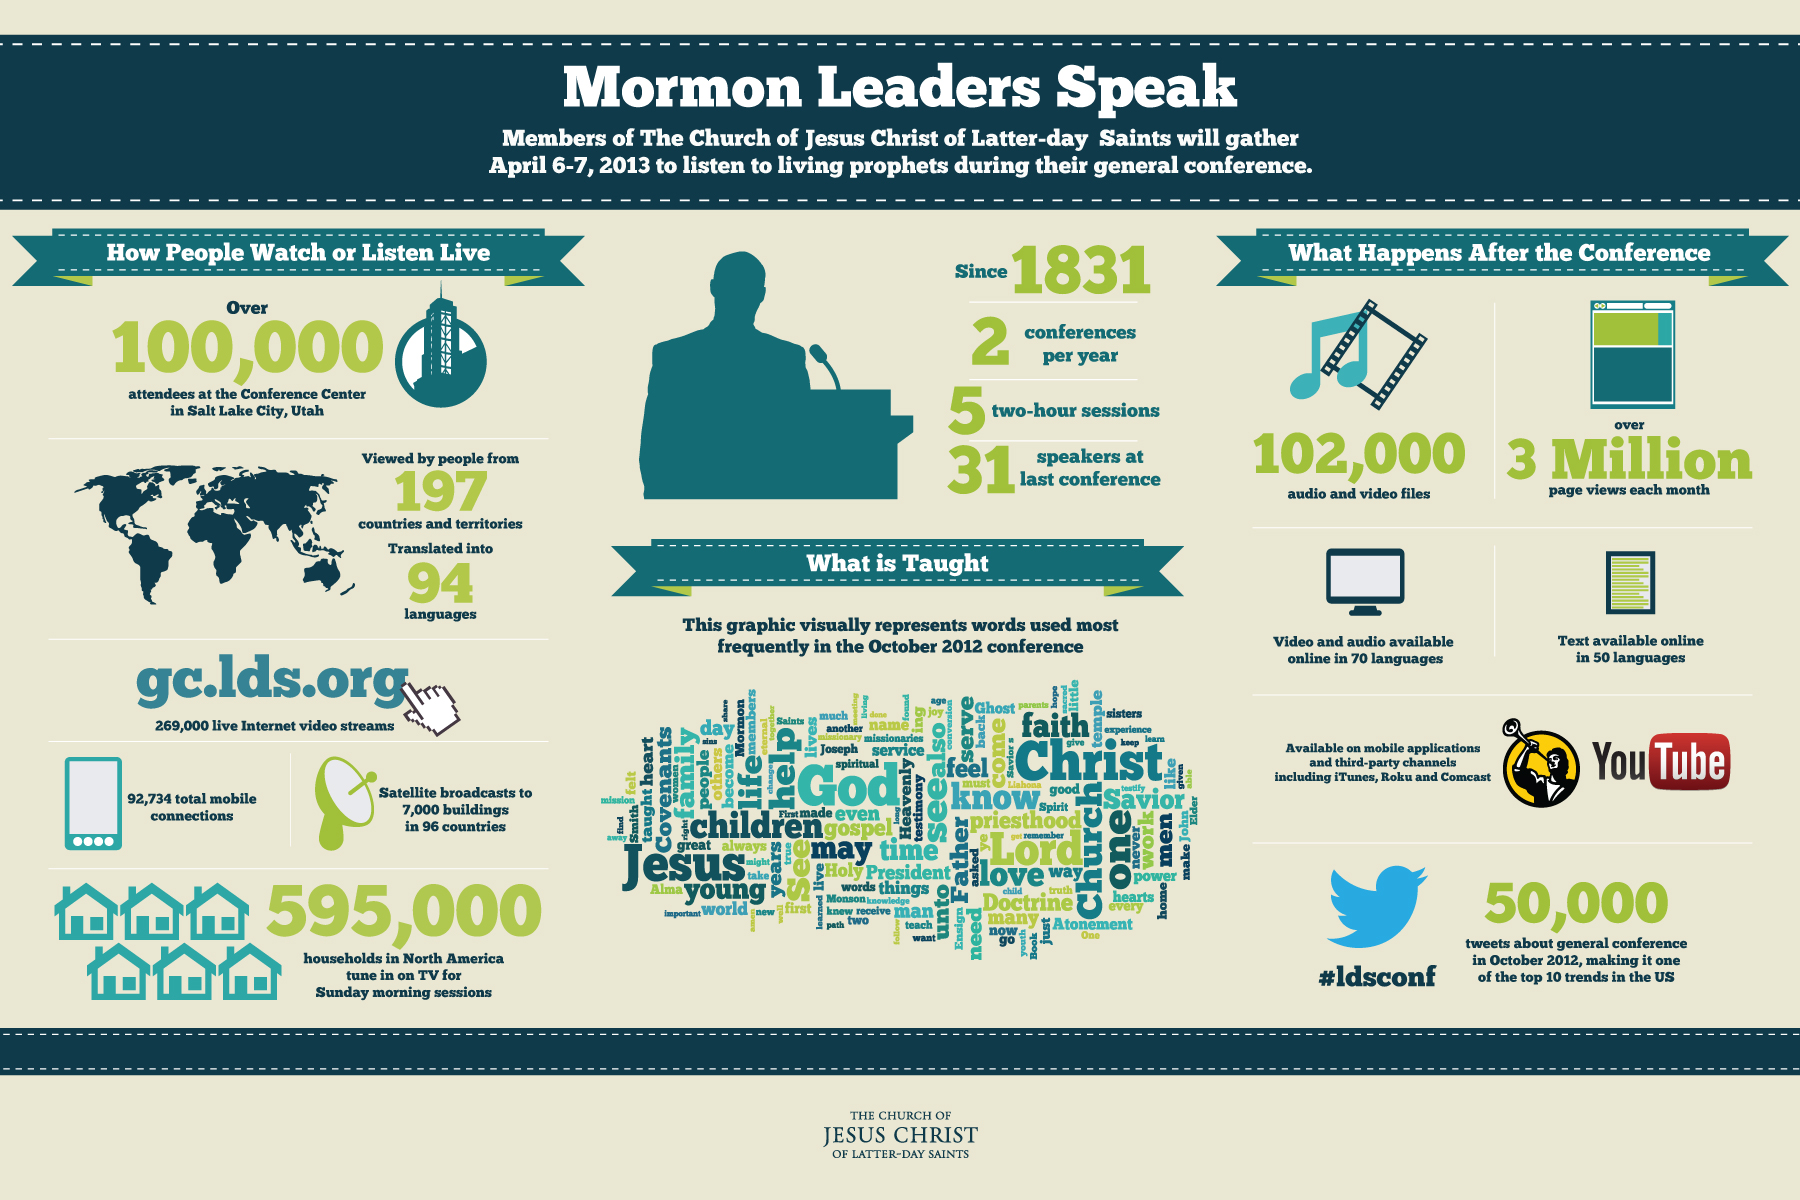 https://www.lds.org/bc/content/ldsorg/general-conference/images/LDS-Mormon-general-conference-info-graphic-apr-2013.jpg?lang=eng